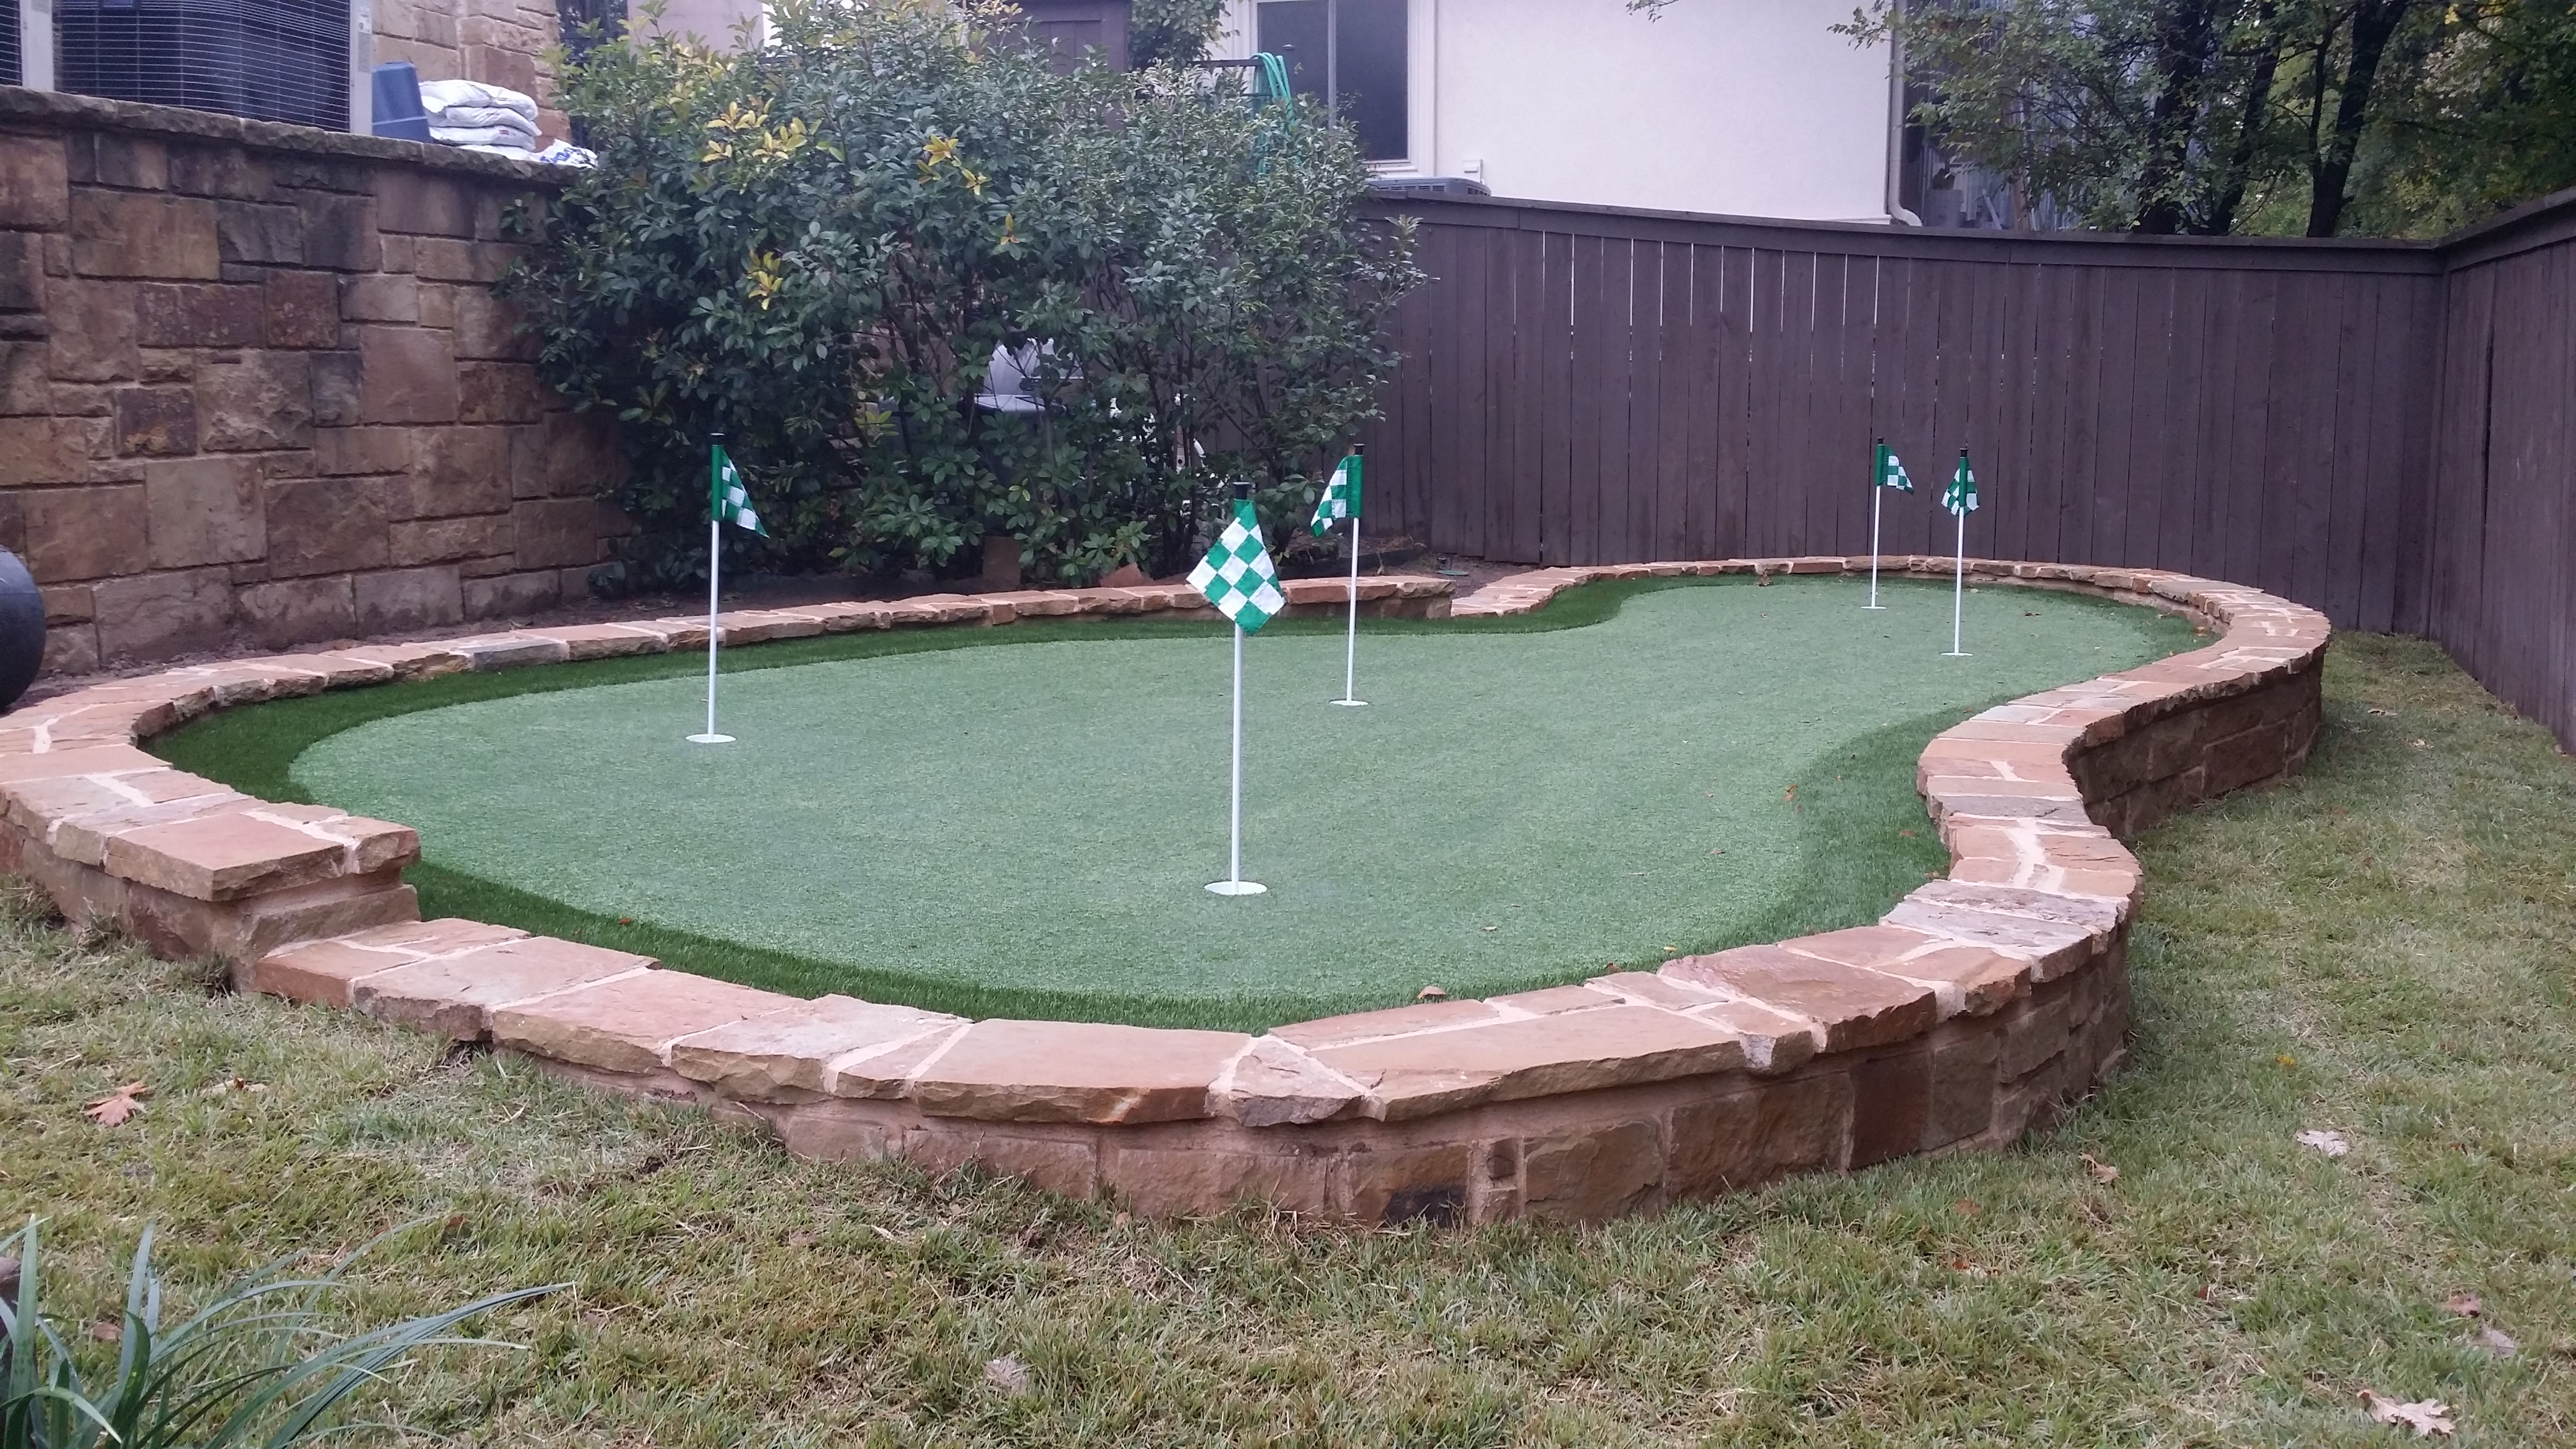 Designing and Installing a Backyard Putting Green ... on Putting Green Ideas For Backyard id=88218